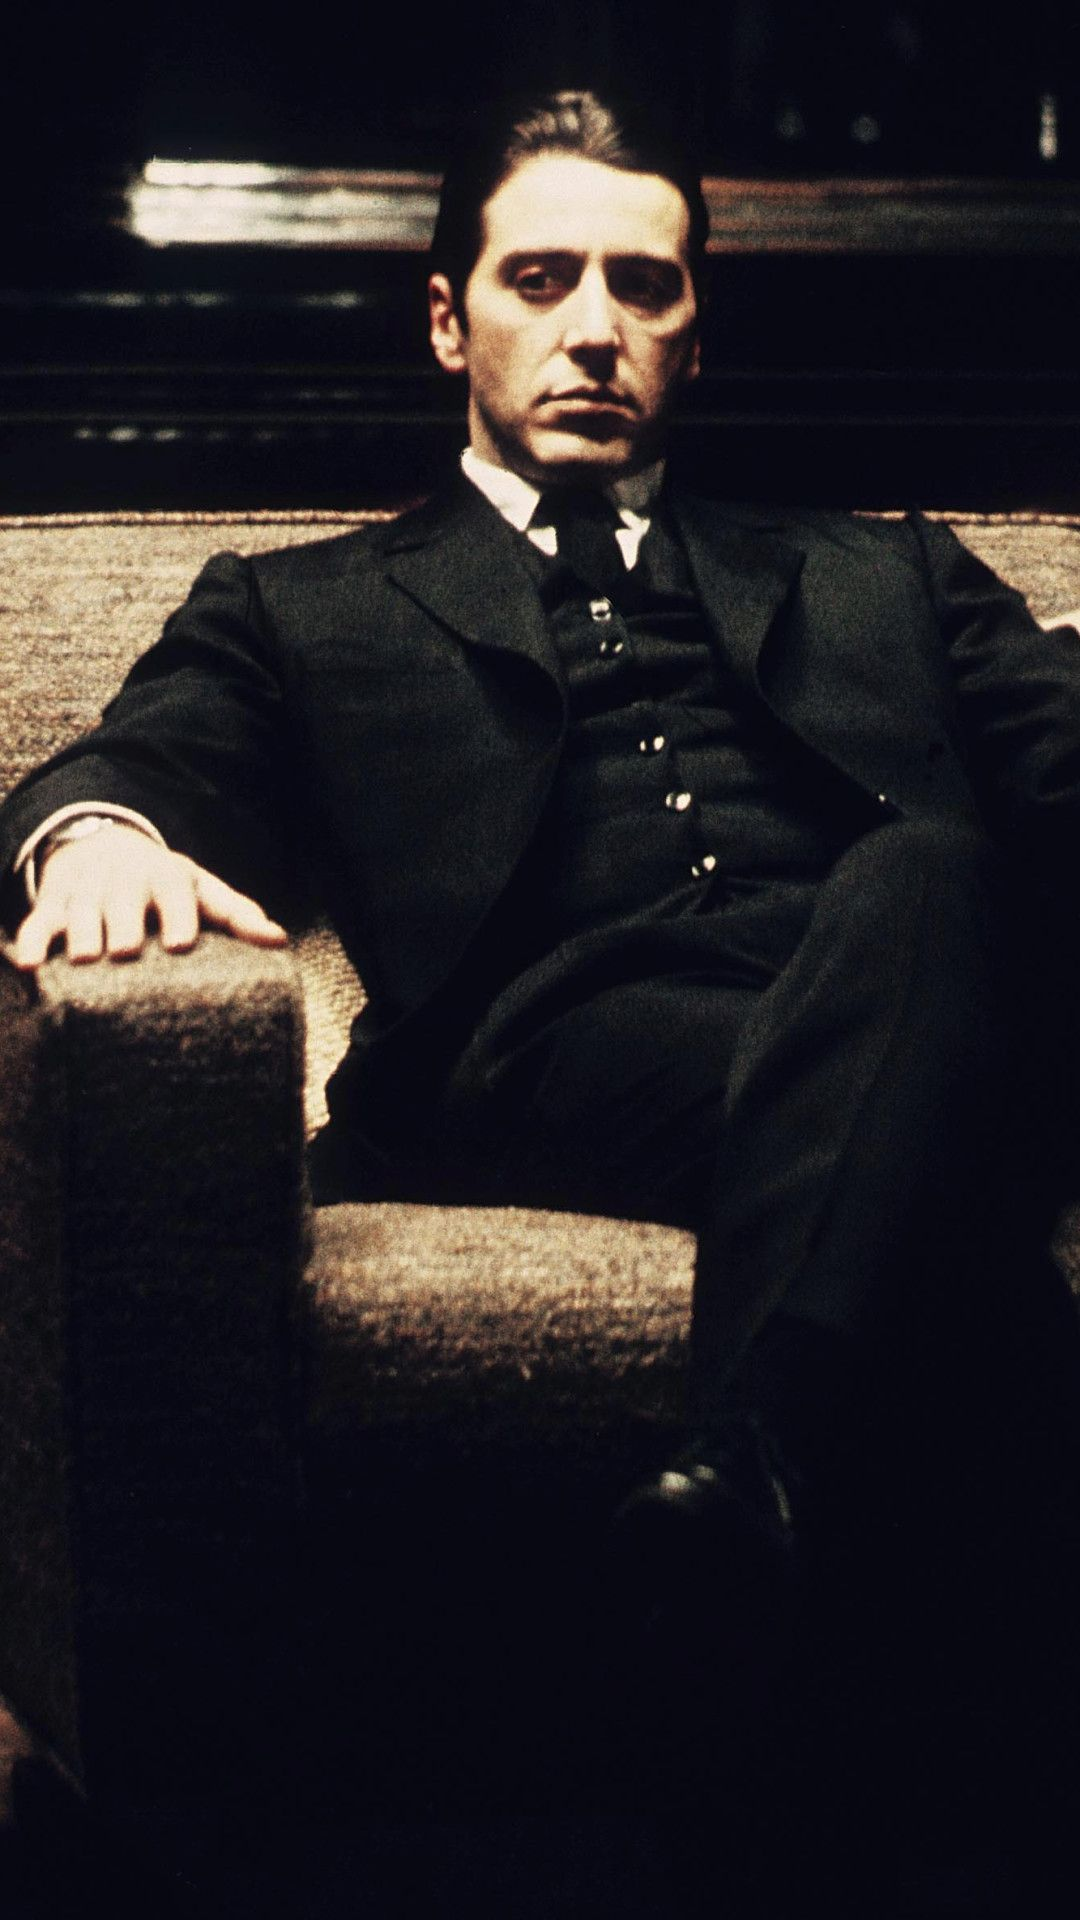 61 The Godfather Wallpapers on WallpaperPlay in 2020 The